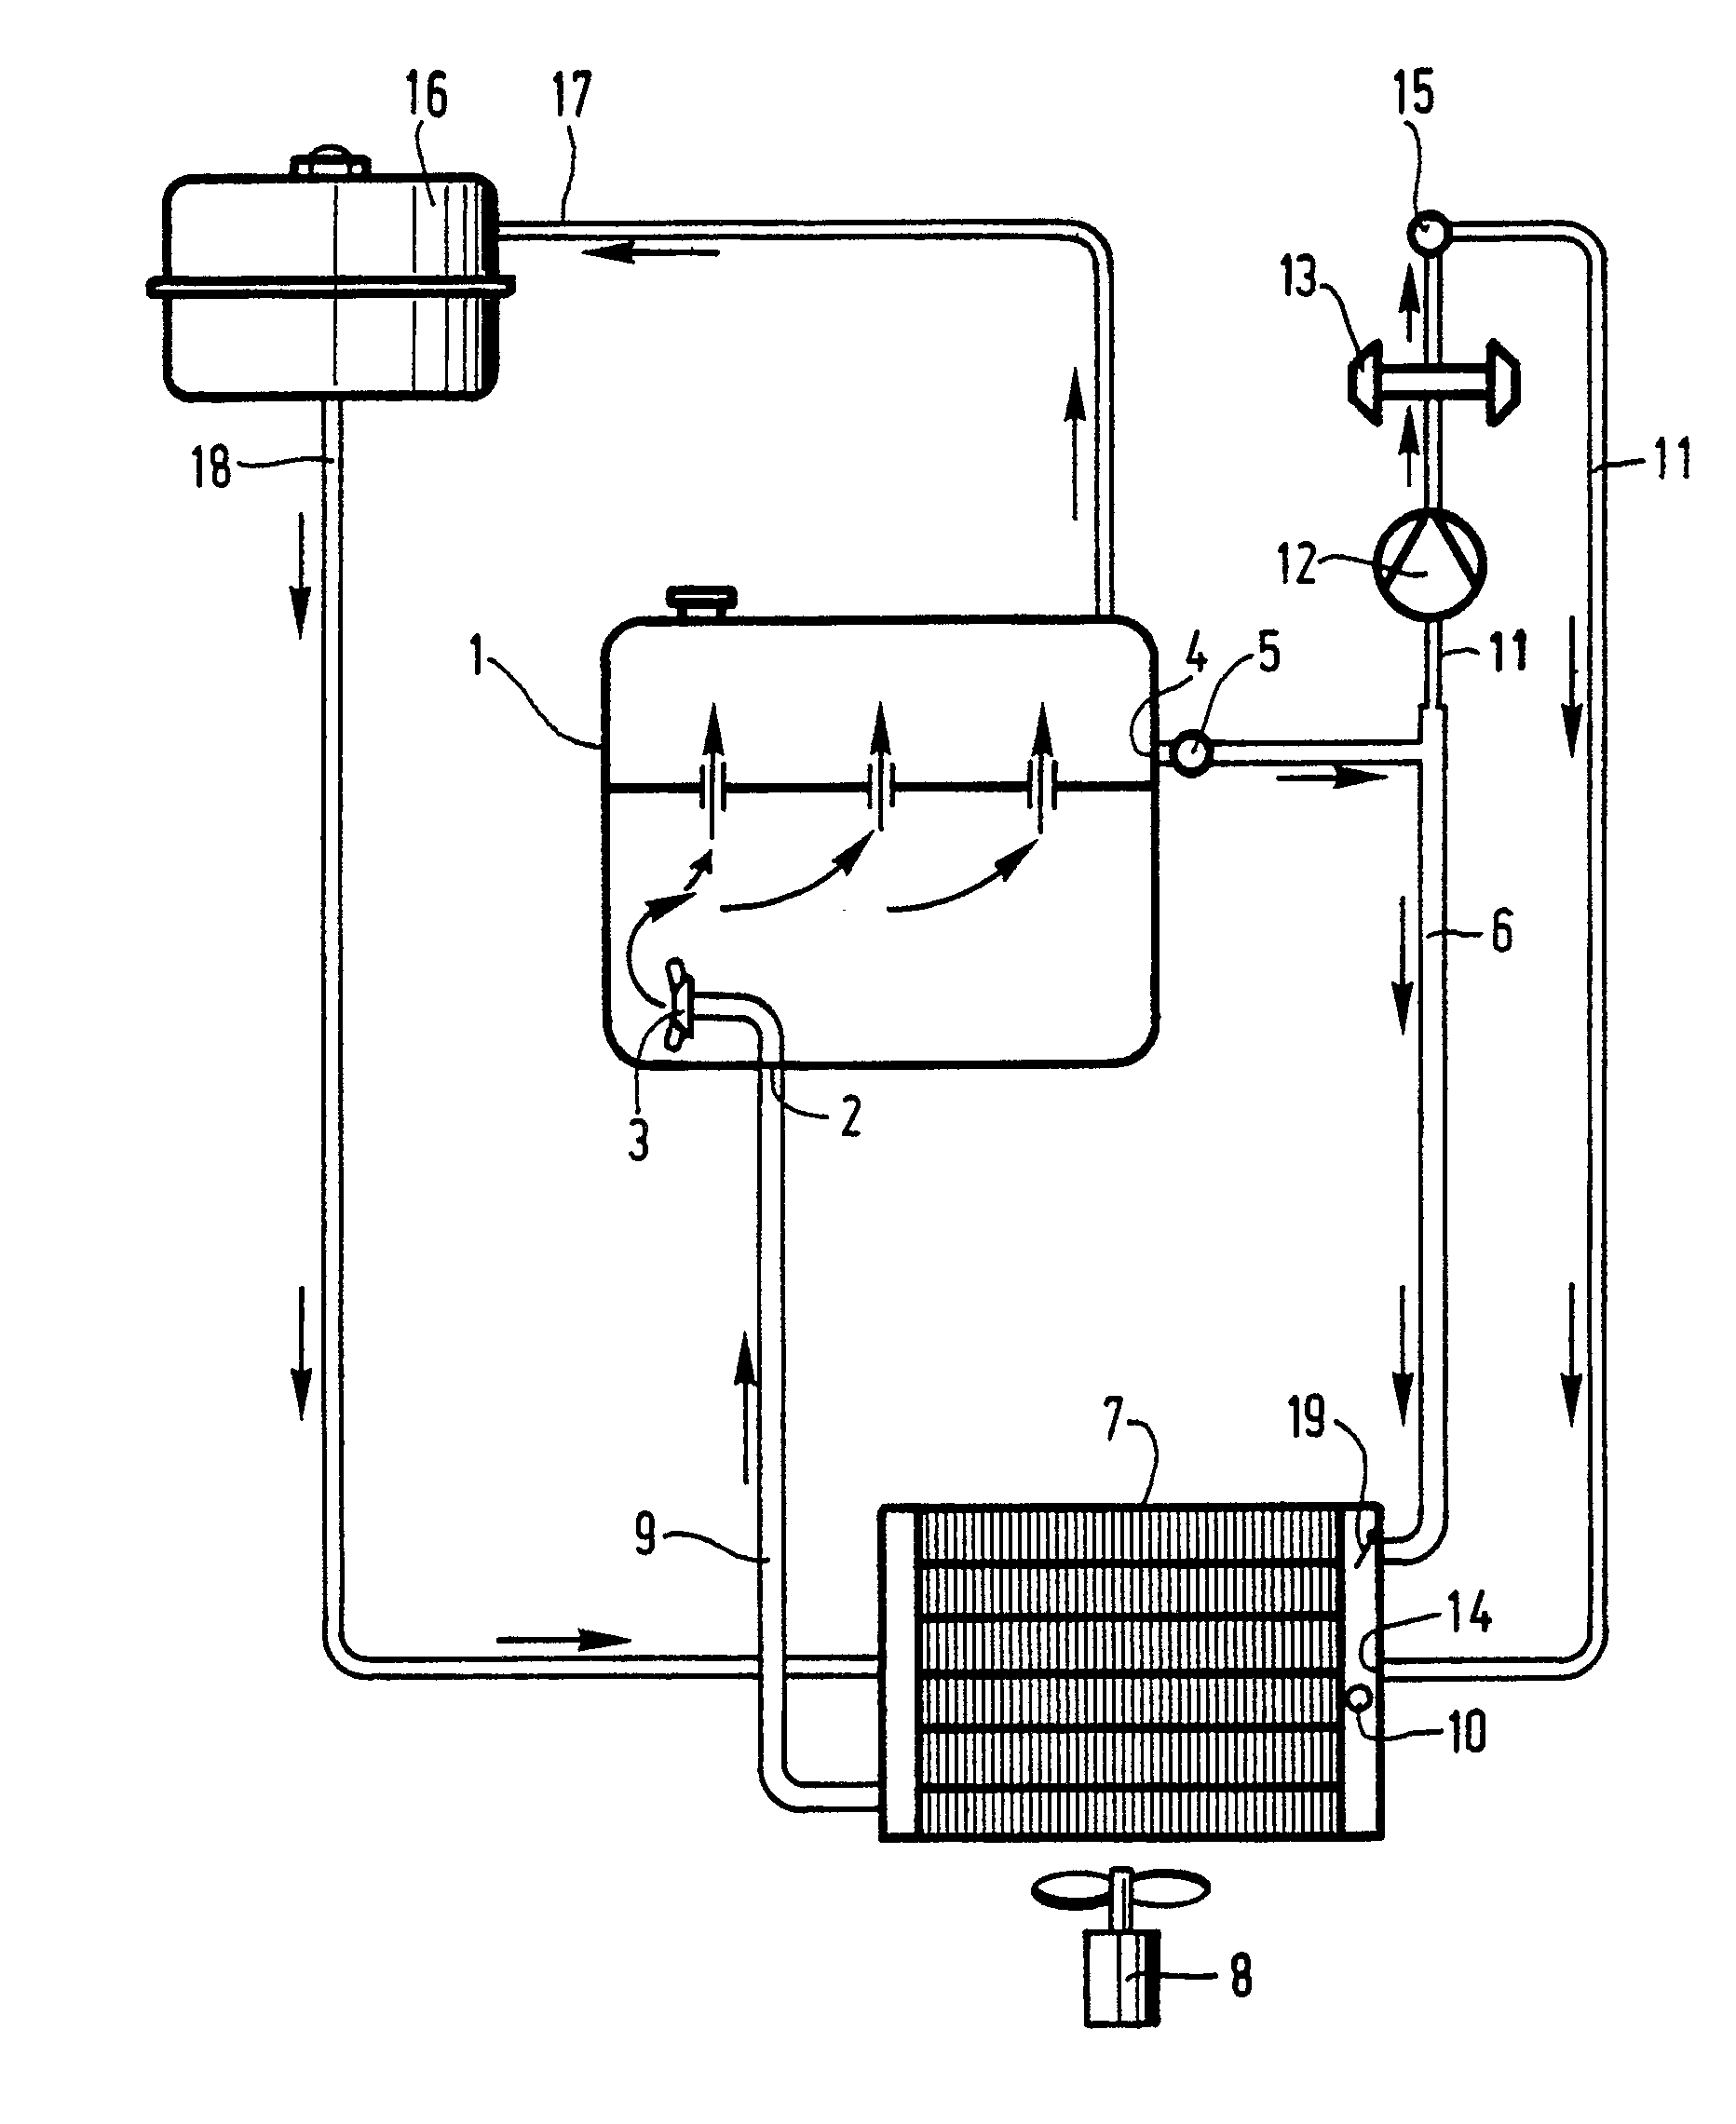 Electric Turbocharger Patents: Cooling System For The Cylinder Head